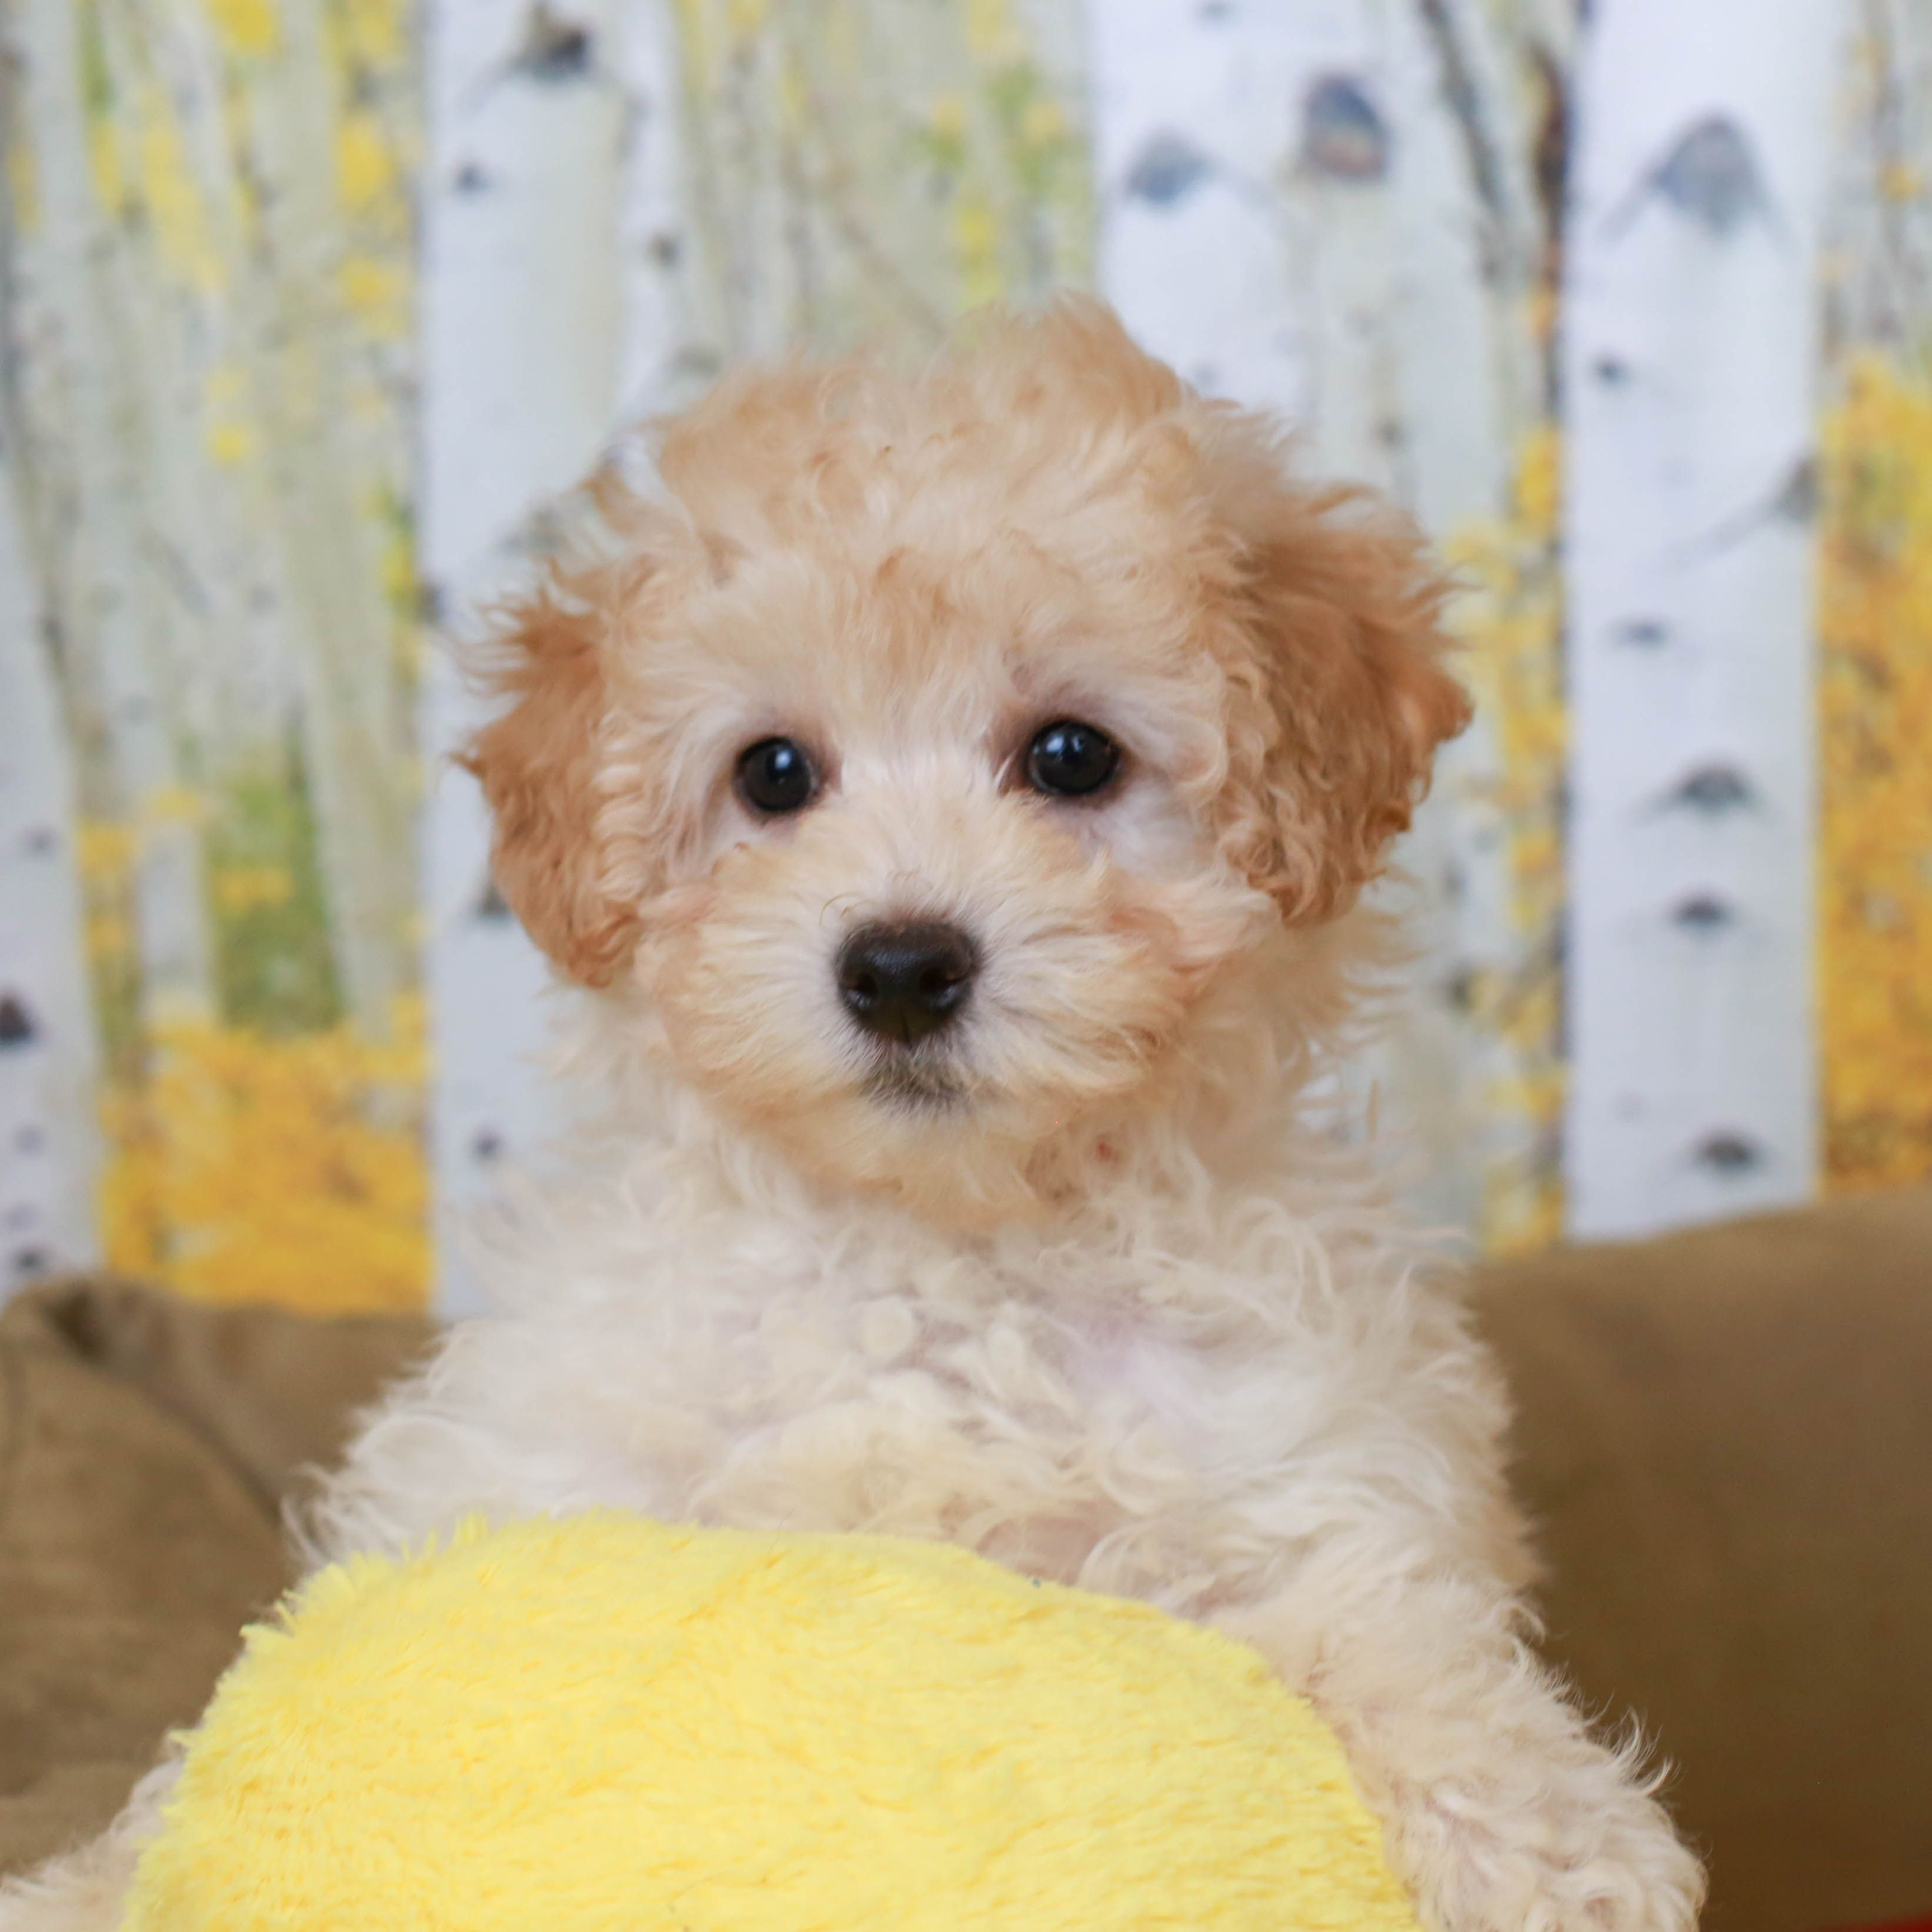 Mini Goldendoodles are bred to be the perfect companion